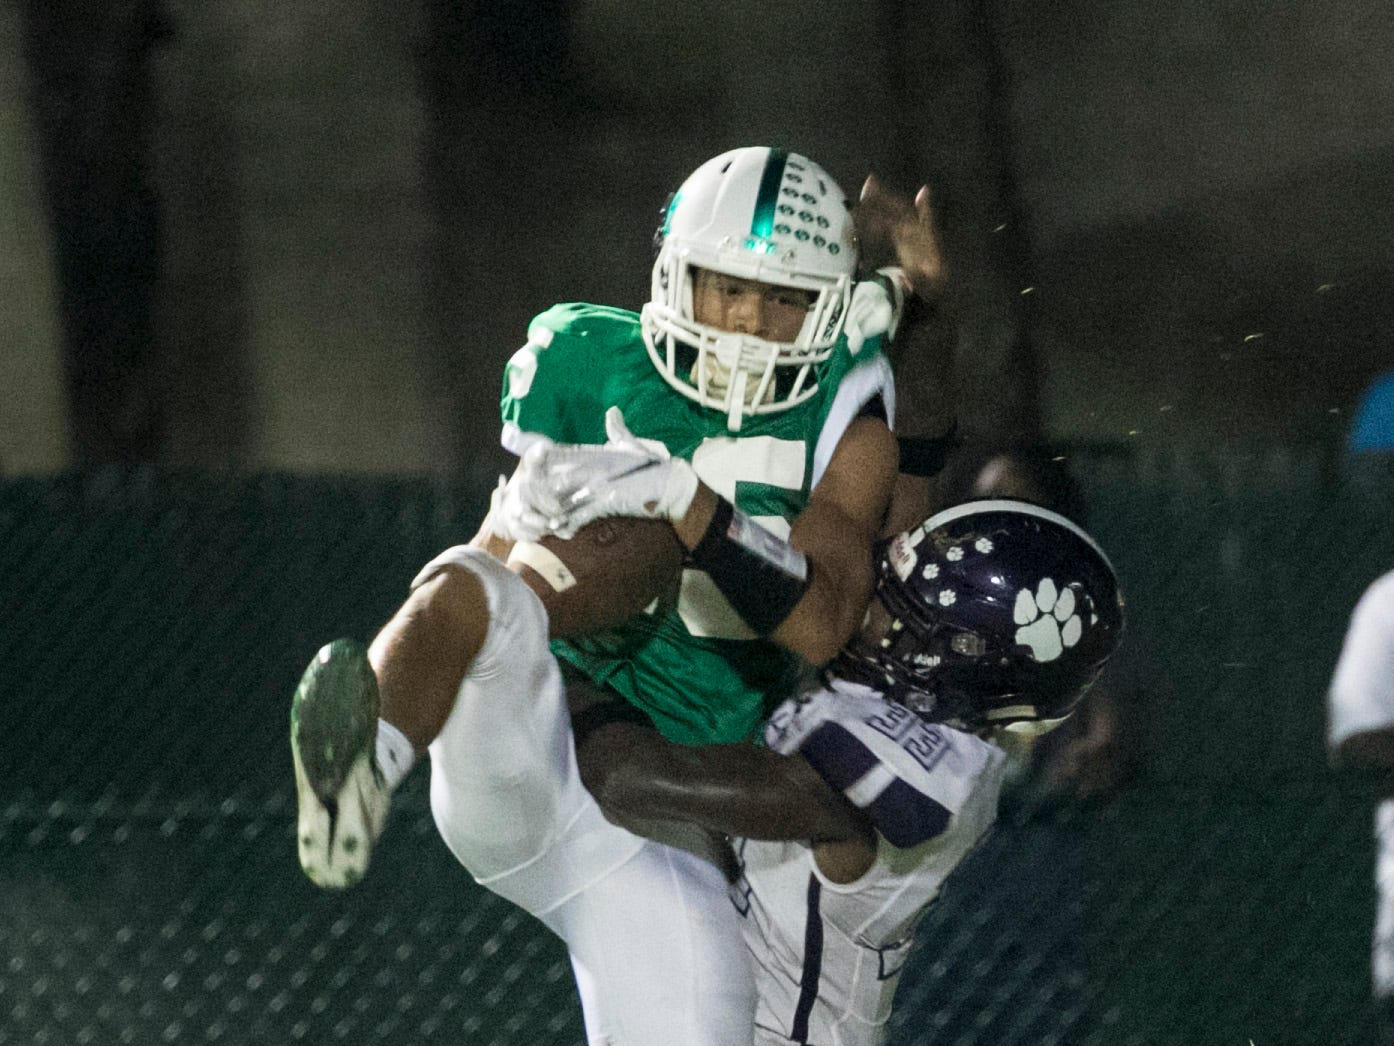 Mason Evans makes a touchdown catch over Cypress Lake's Chris Joseph in the first half on Friday, September 7, 2018, at Fort Myers High School.